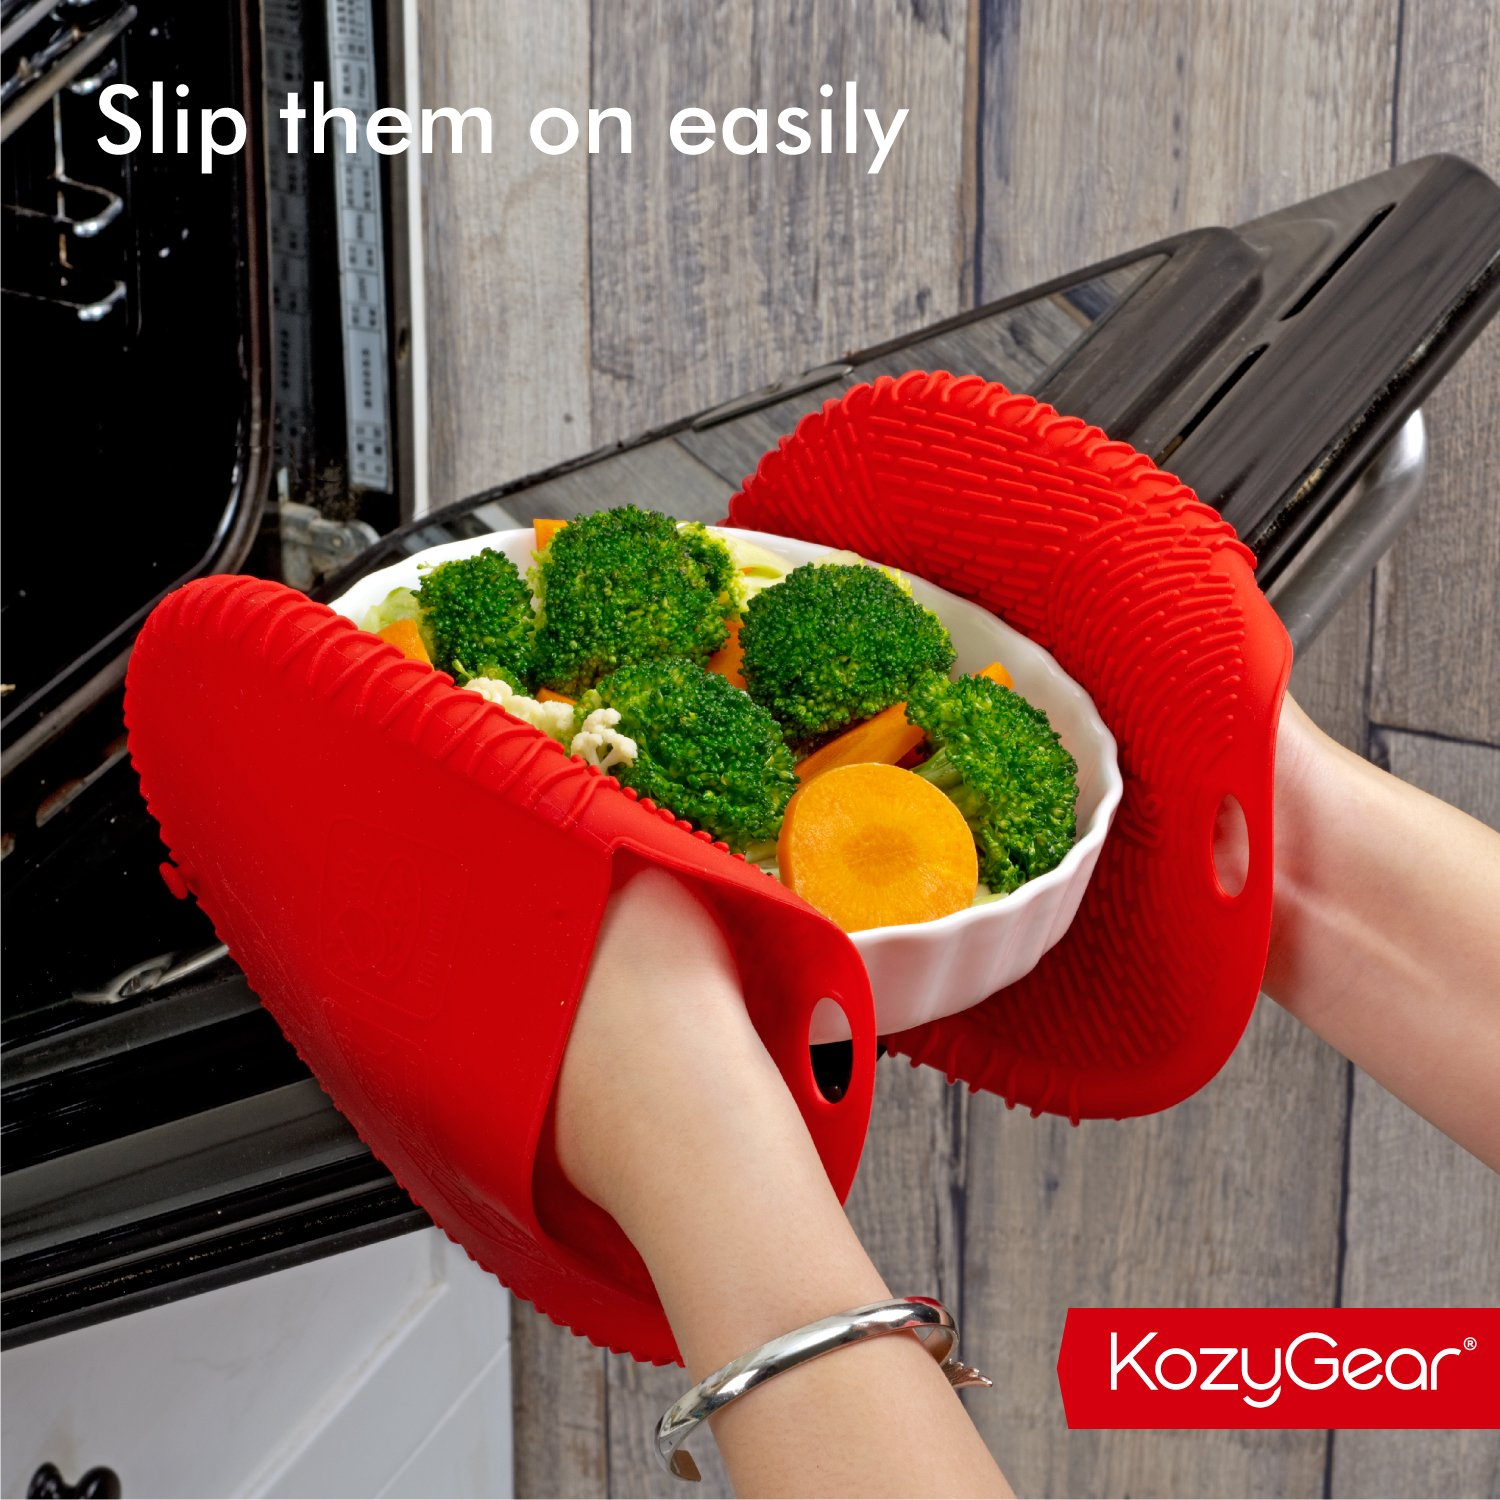 KozyGear Premium 442 °F Heat Resistant Silicone Glove Holder/Oven Mitt Pair Set for Hot Pot [Z4 Series] (RED) by KozyGear (Image #6)